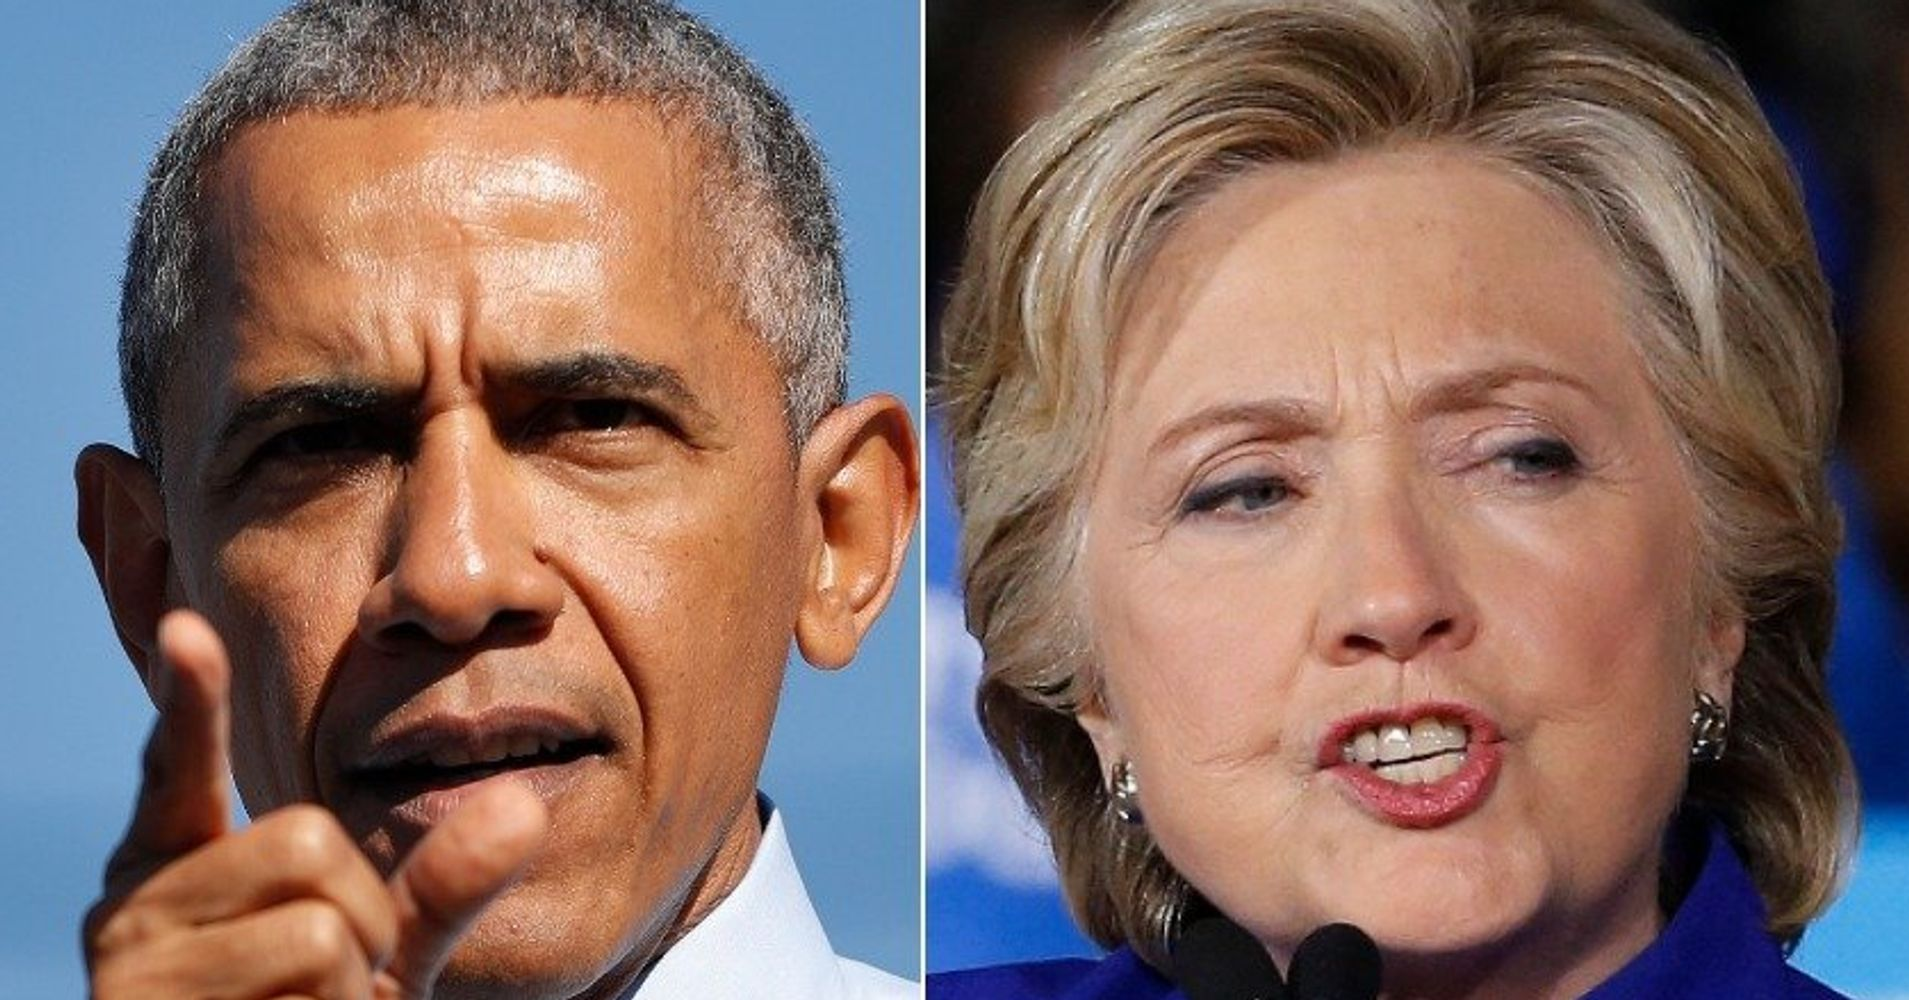 Fox News Found A Whole New Way To Freak Out About Barack Obama And Hillary Clinton thumbnail